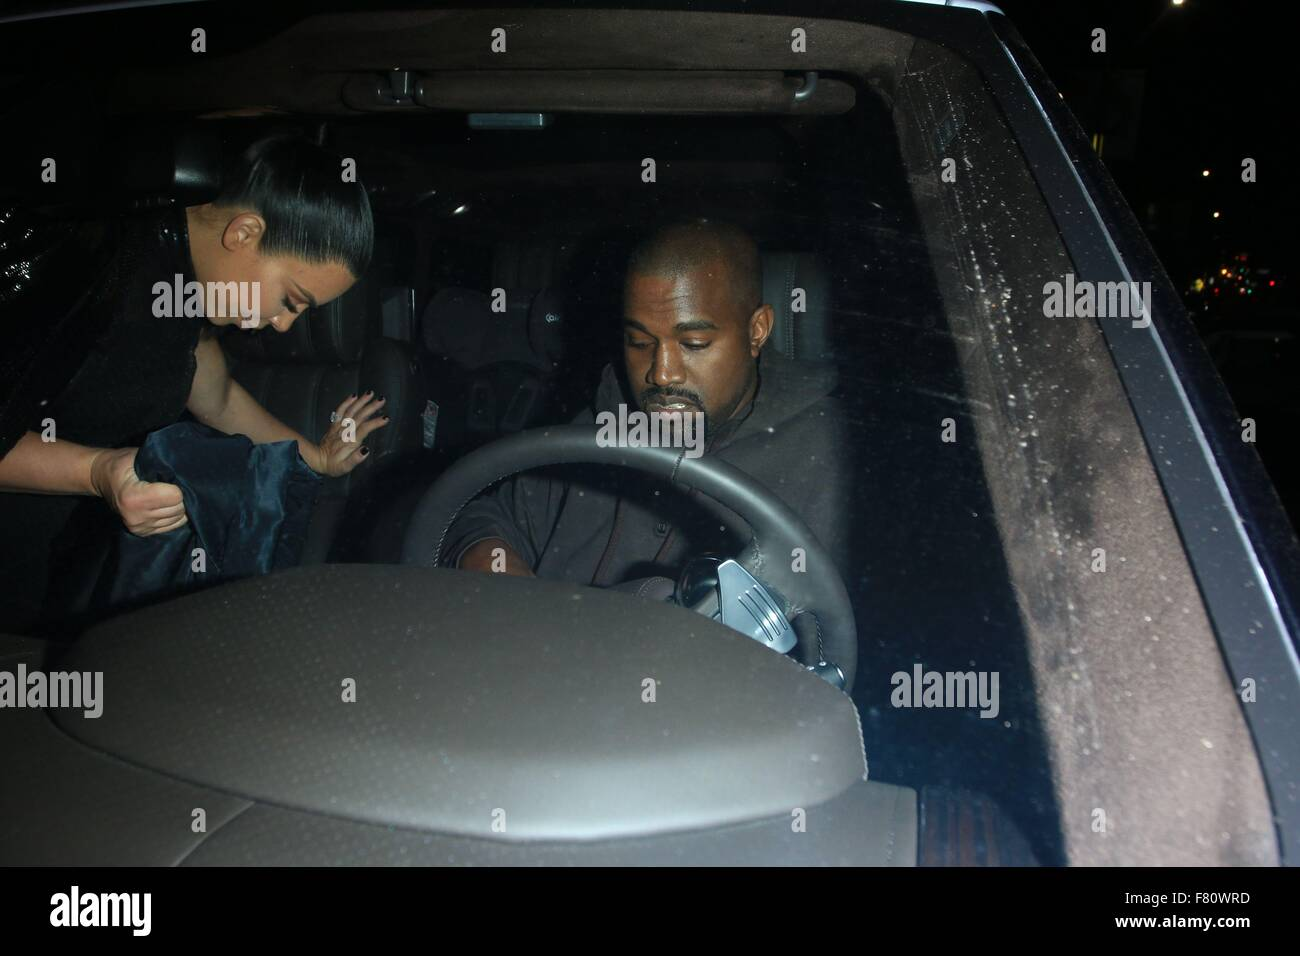 f5f9fb5fcfe1 A heavily pregnant Kim Kardashian and Kanye West attend Kendall Jenner s  Birthday Celebration at The Nice Guy in West Hollywood Featuring  Kanye West